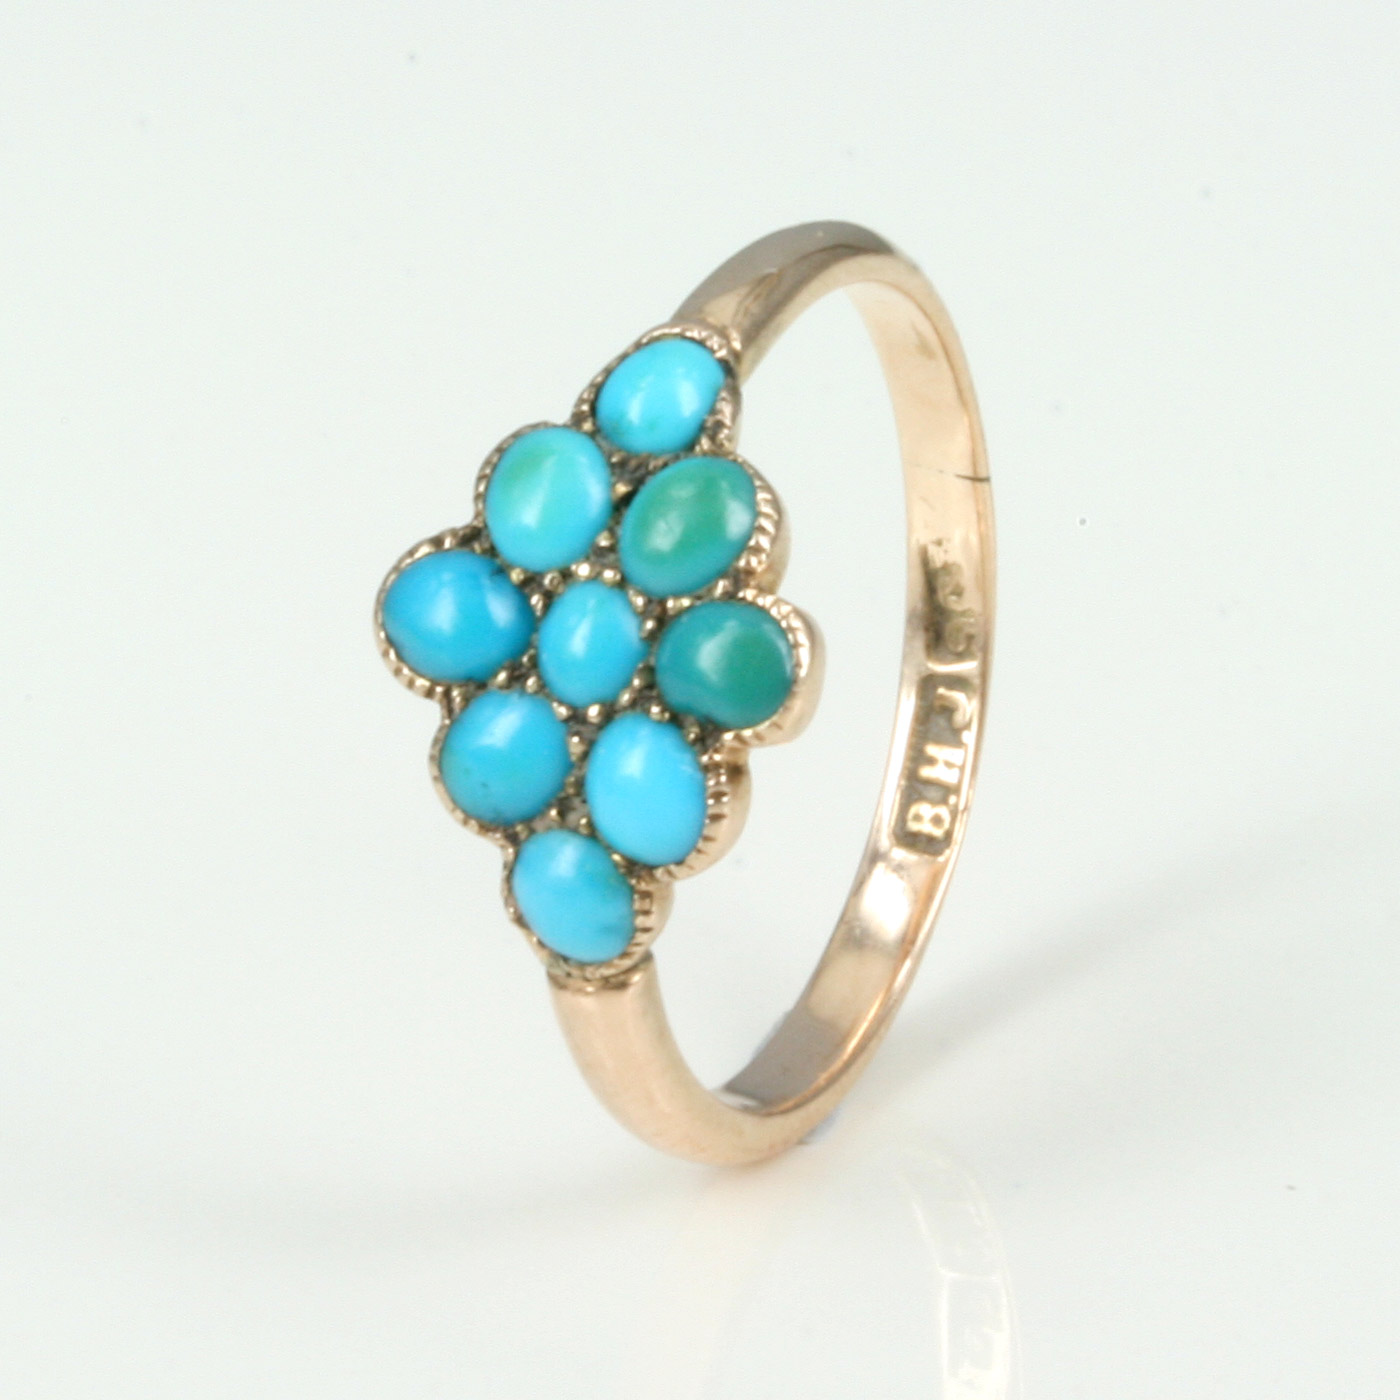 Buy Antique Turquoise Ring Sold Items Sold Rings Sydney